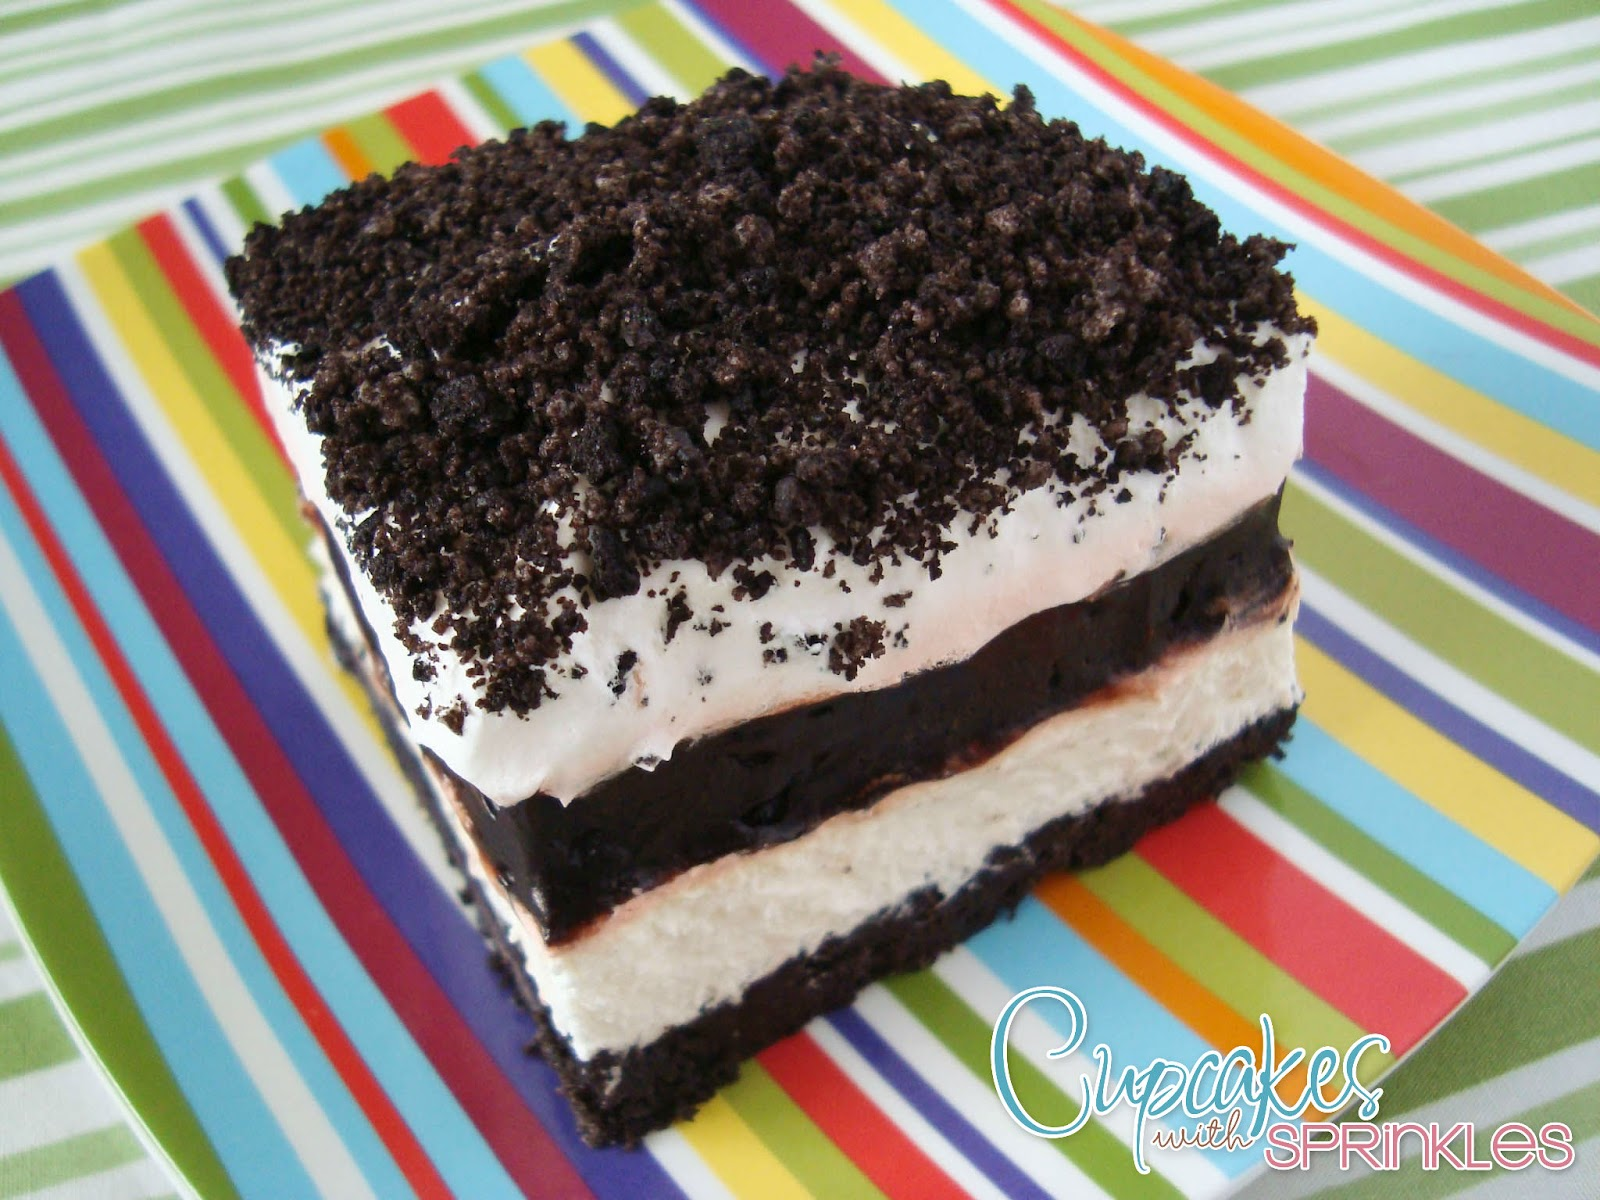 Oreo Whip Cream Pudding Dessert http://cupcakeswithsprinkles.blogspot.com/2012/05/oreo-pudding-layered-dessert.html